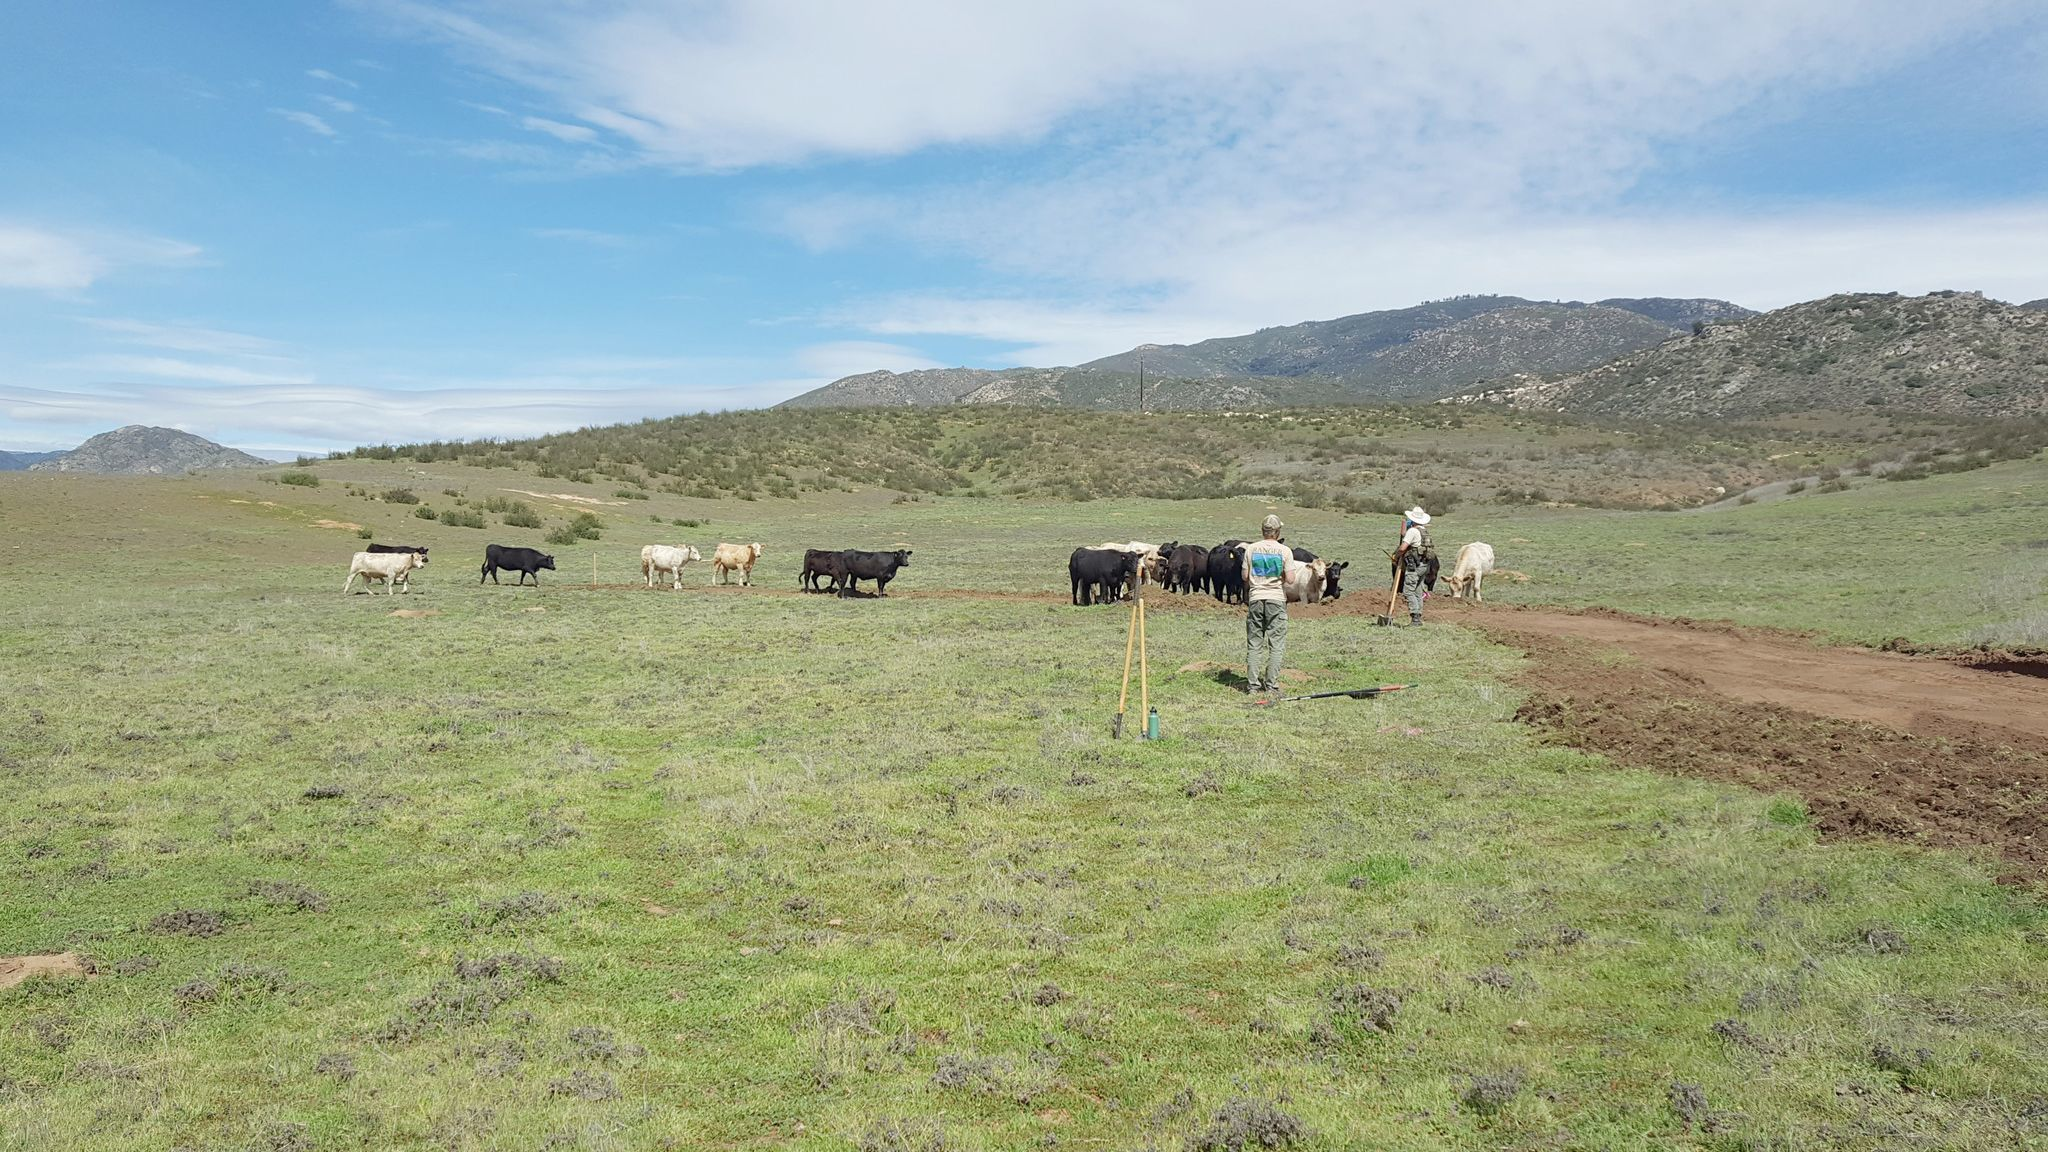 Cows roam the Pamo Valley area where crews work to build the 3-mile segment of the Coast to Crest Trail near Ramona.